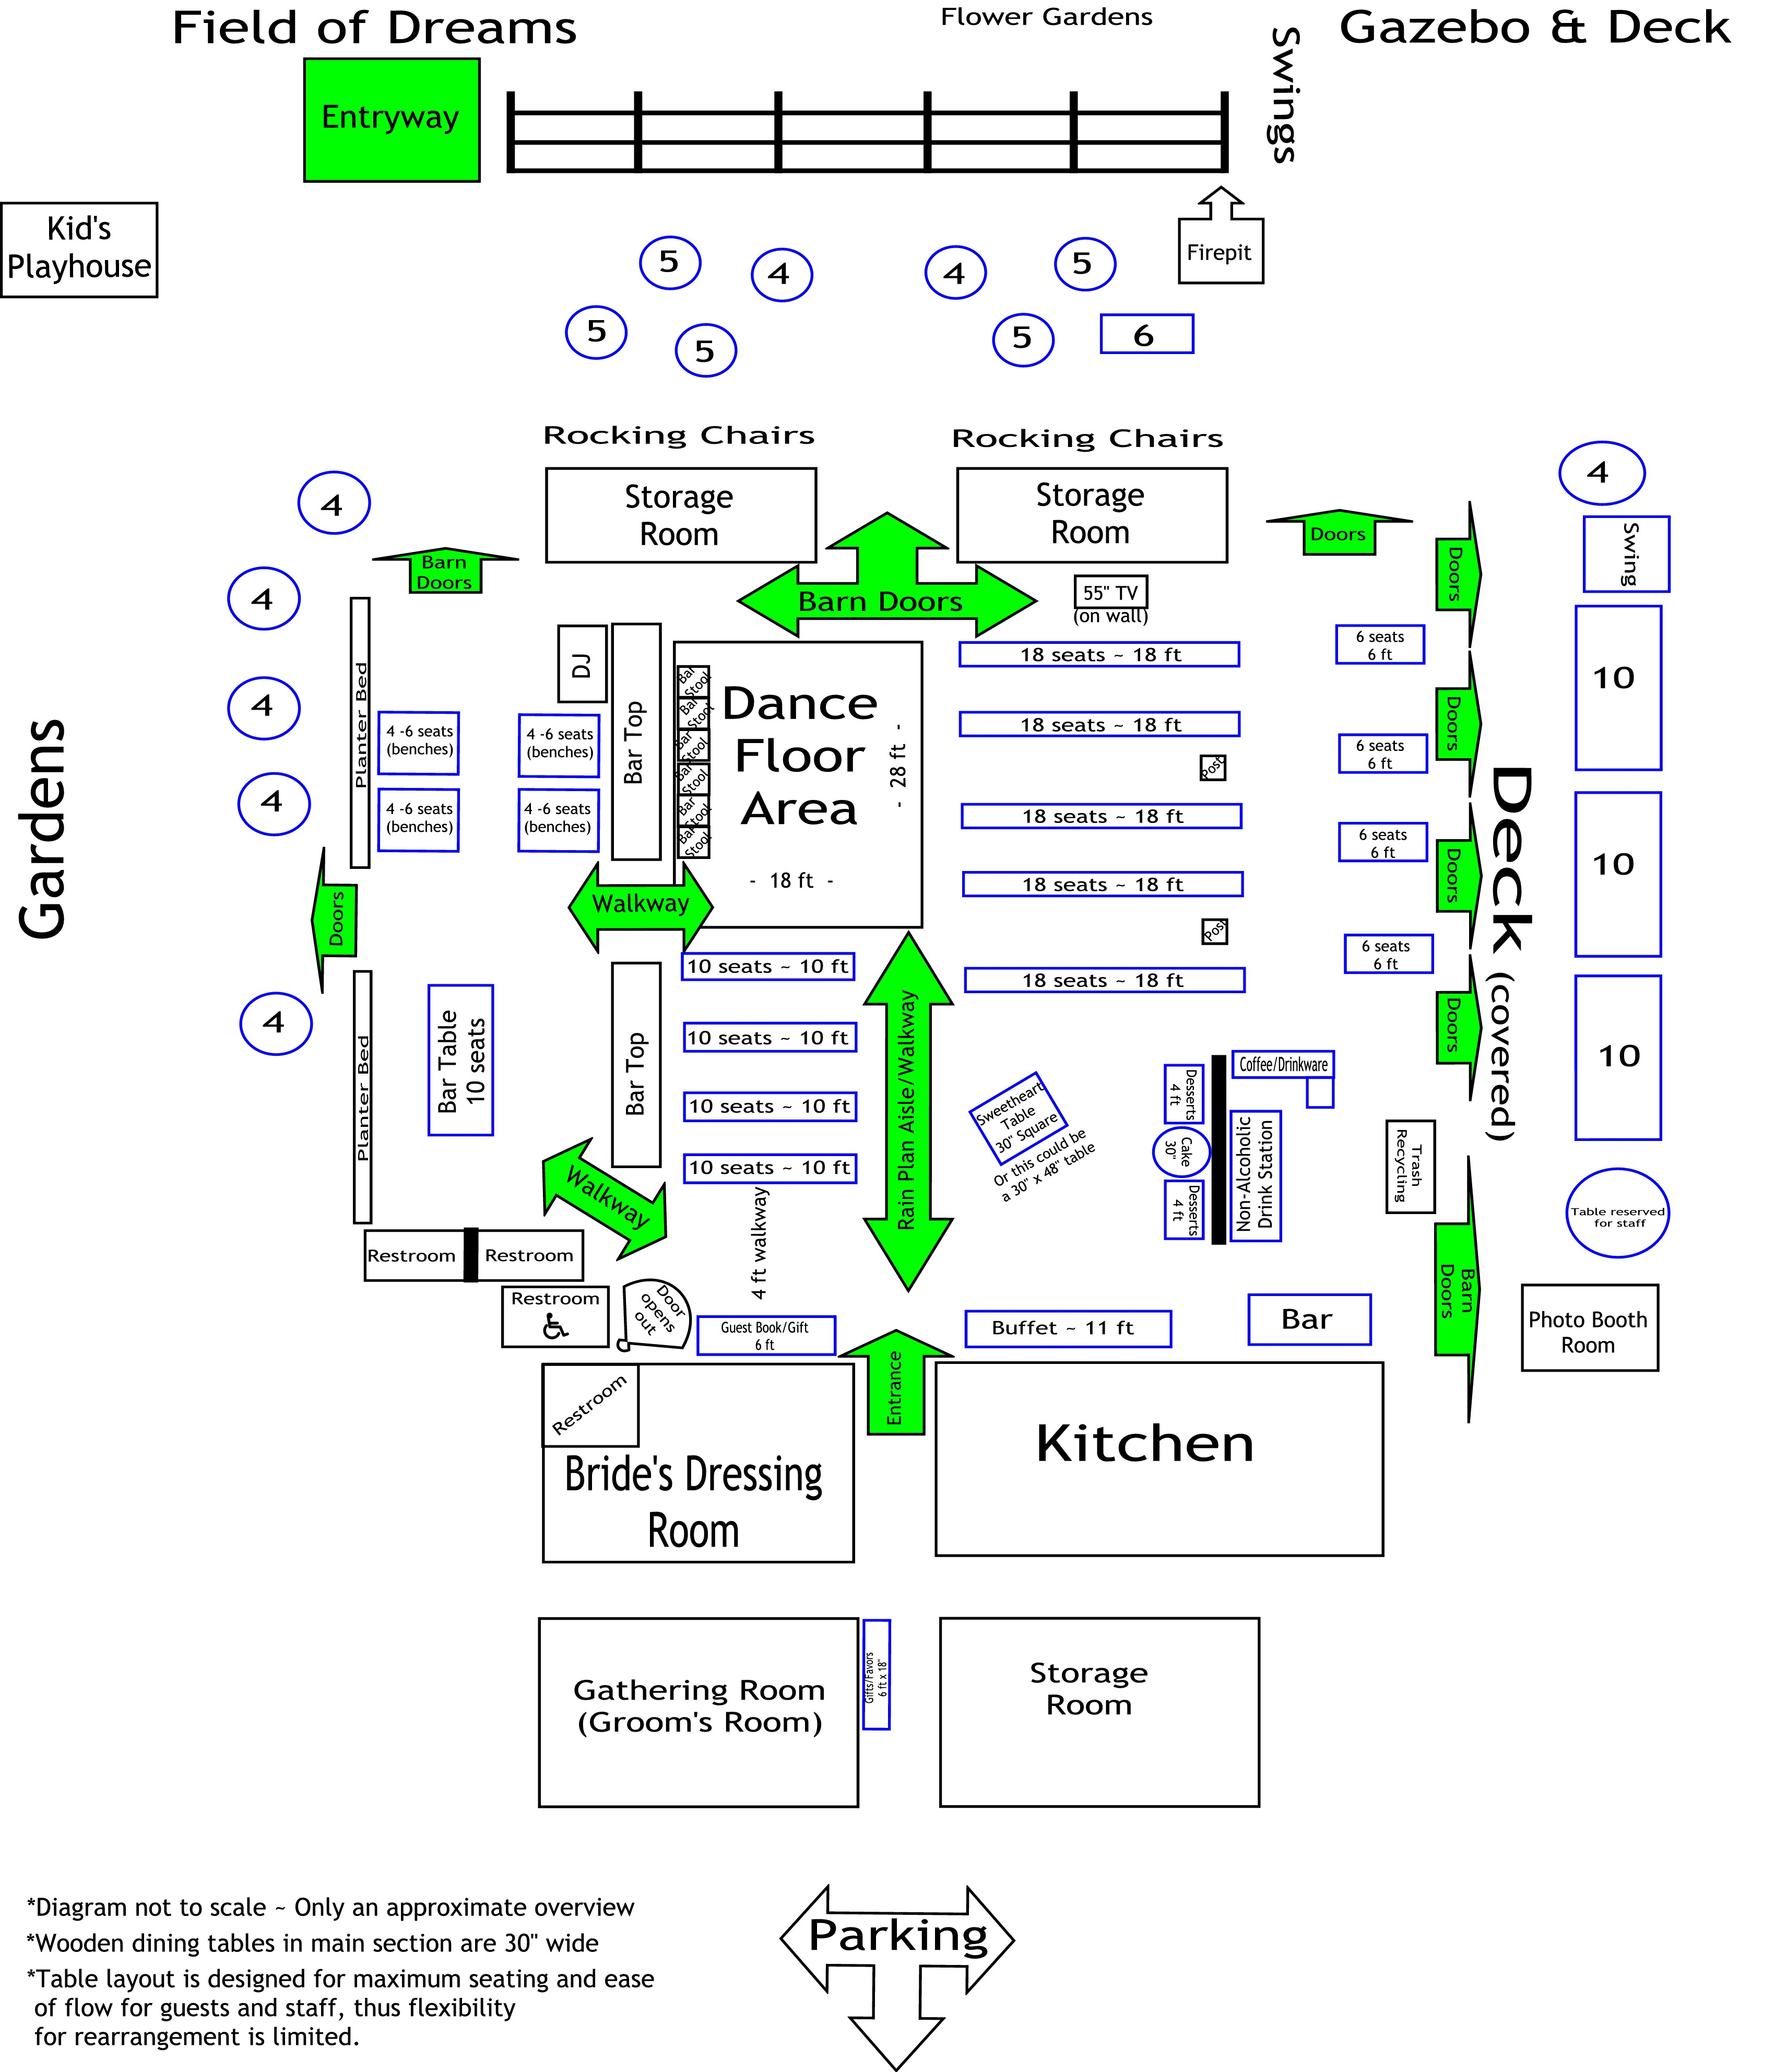 Here is an image of our barn layout